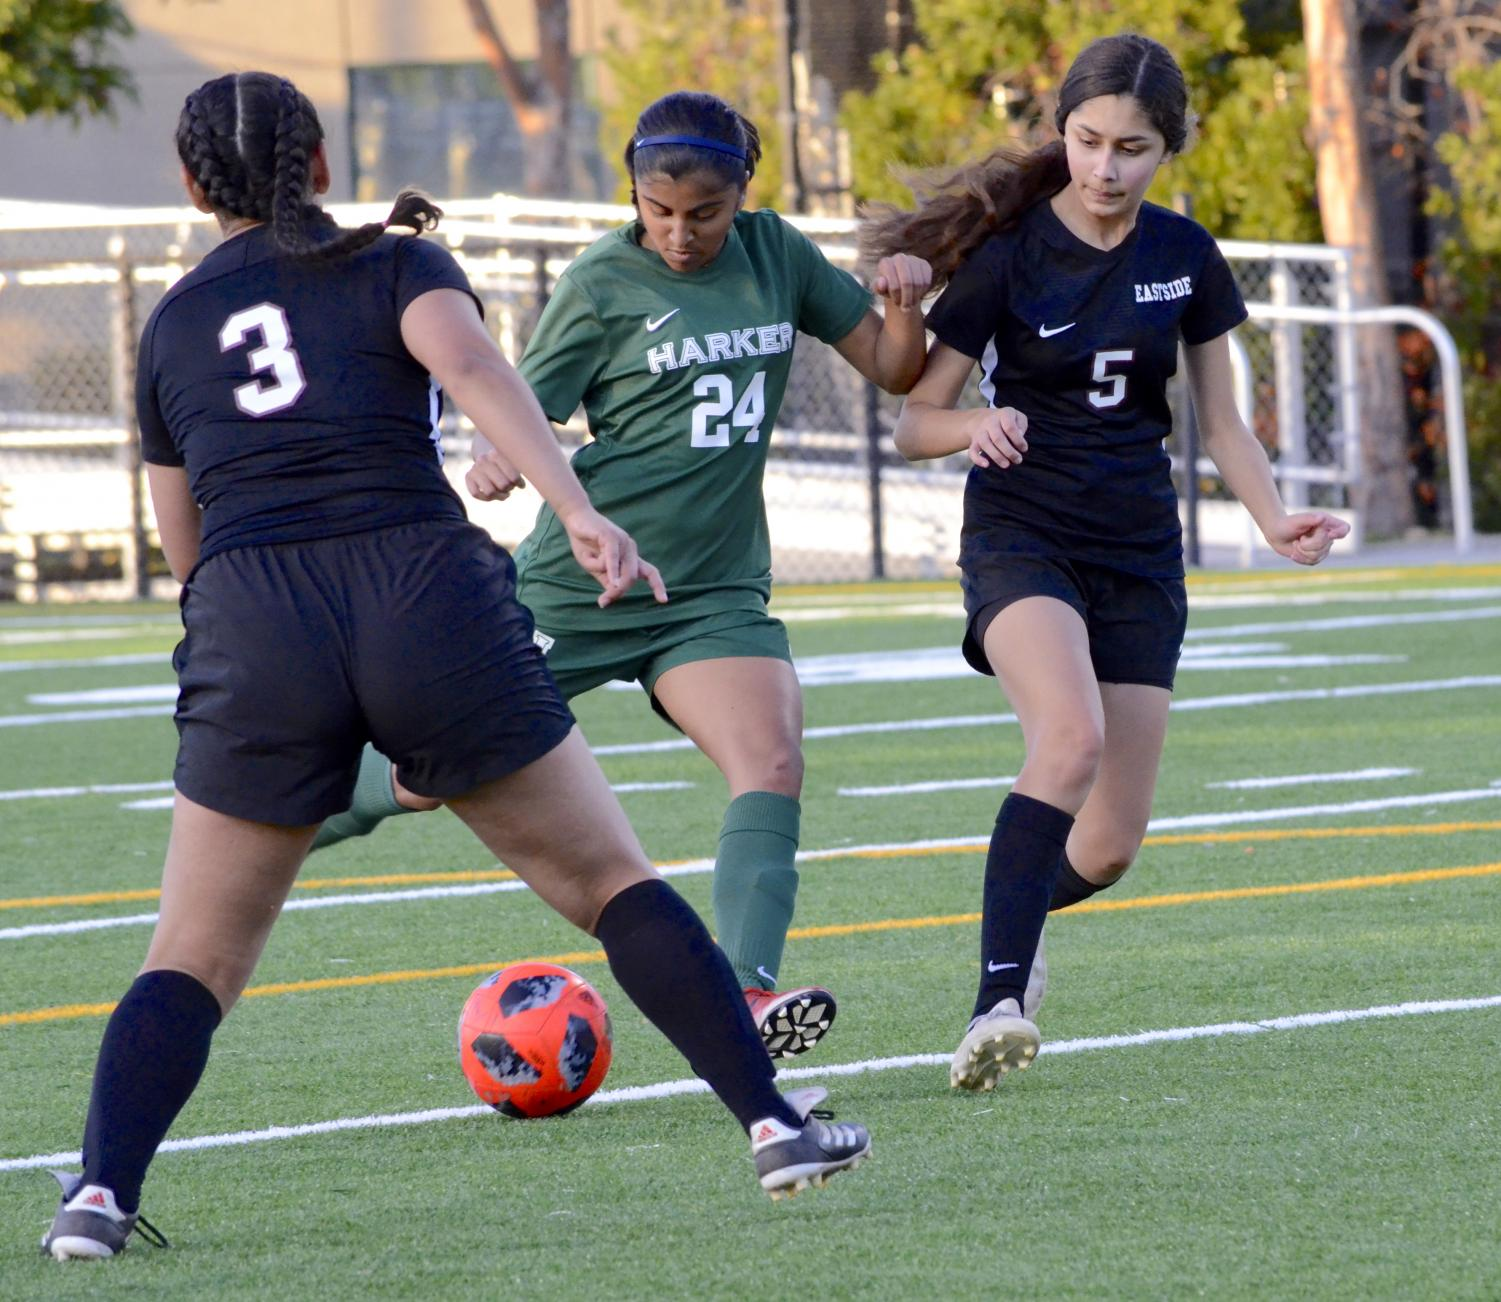 Megha Salvi (9) weaves through two Eastside players. The girls' next home game will be against Notre Dame on Jan. 12 at 10:30 a.m.